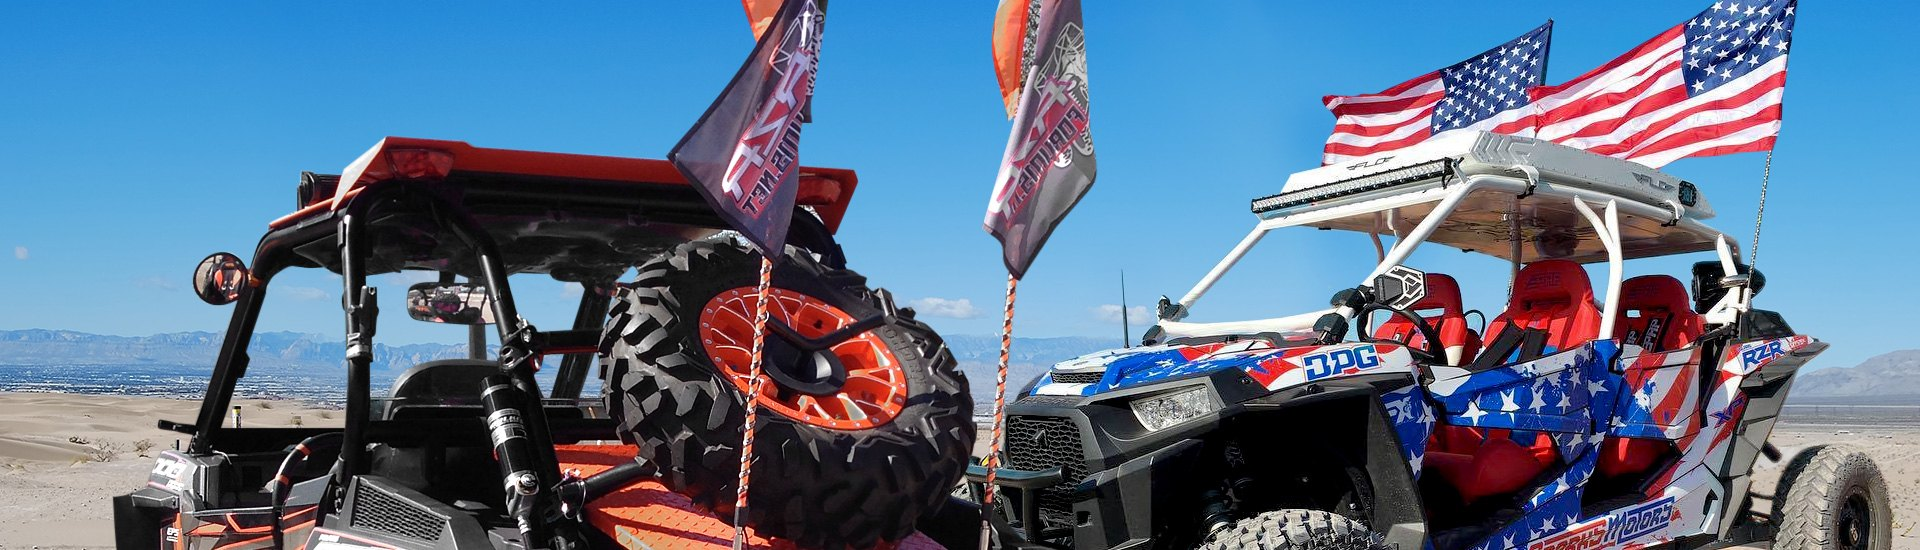 Polaris RZR XP 1000 EPS Flags, Banners, Signs | Riding